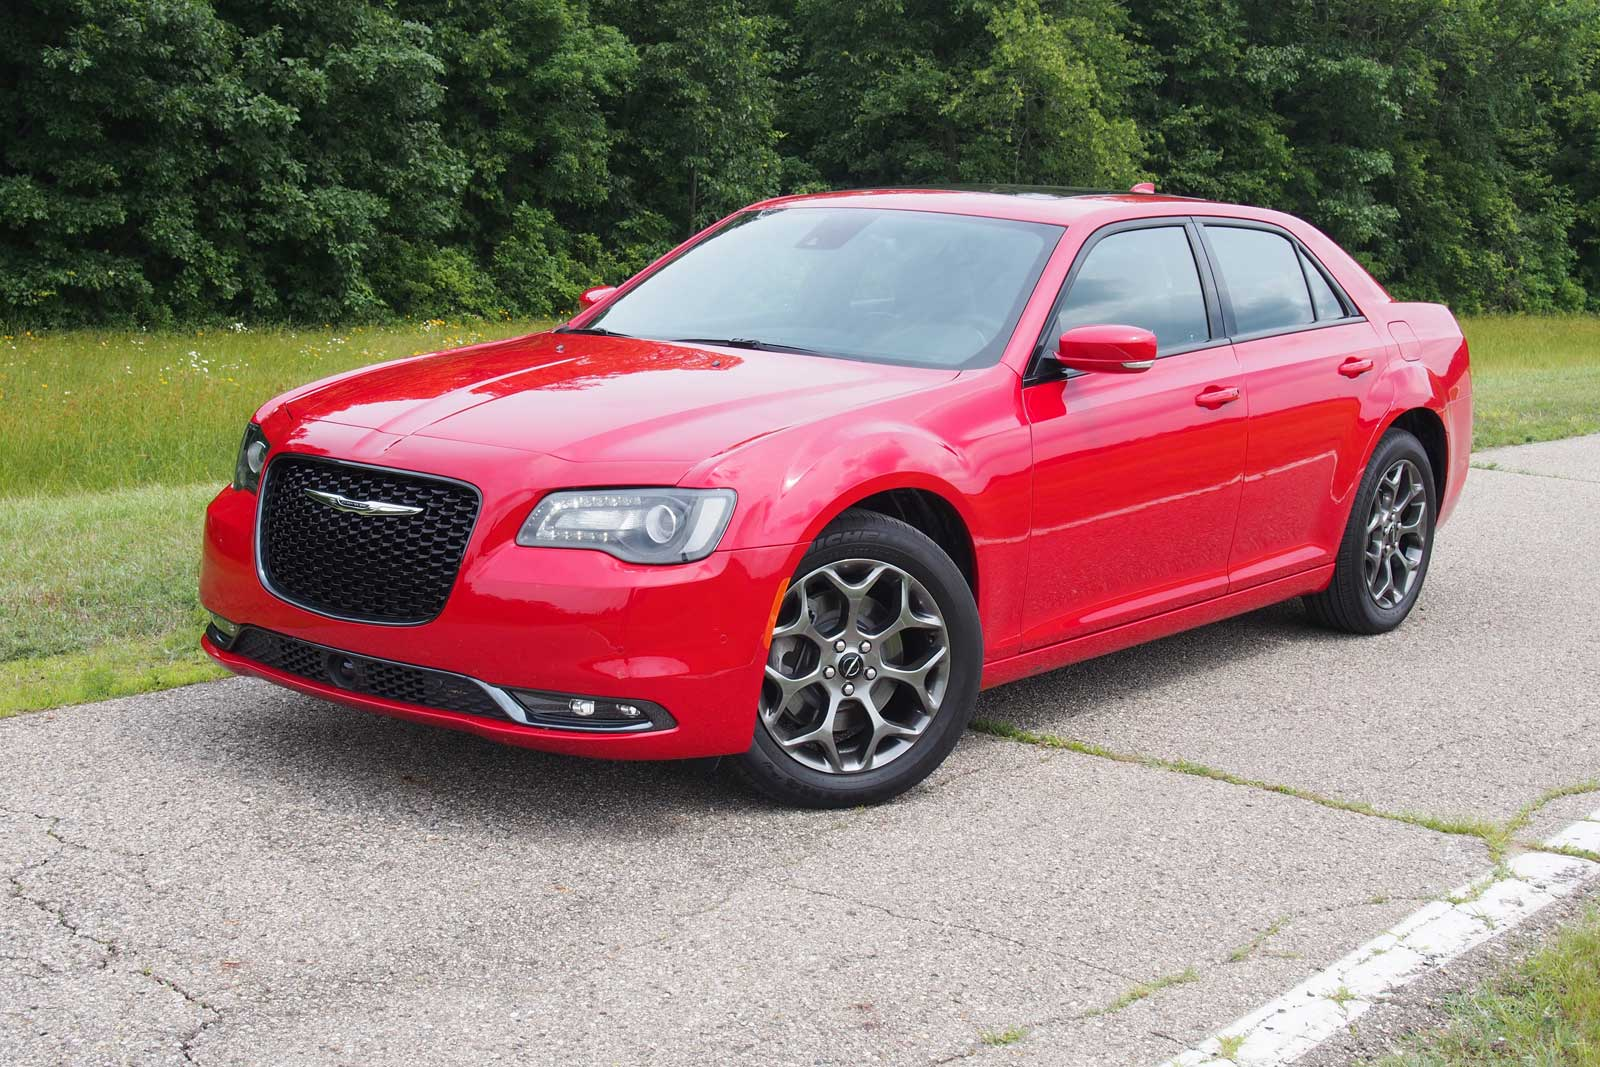 chrysler 300 awd review autos post. Black Bedroom Furniture Sets. Home Design Ideas